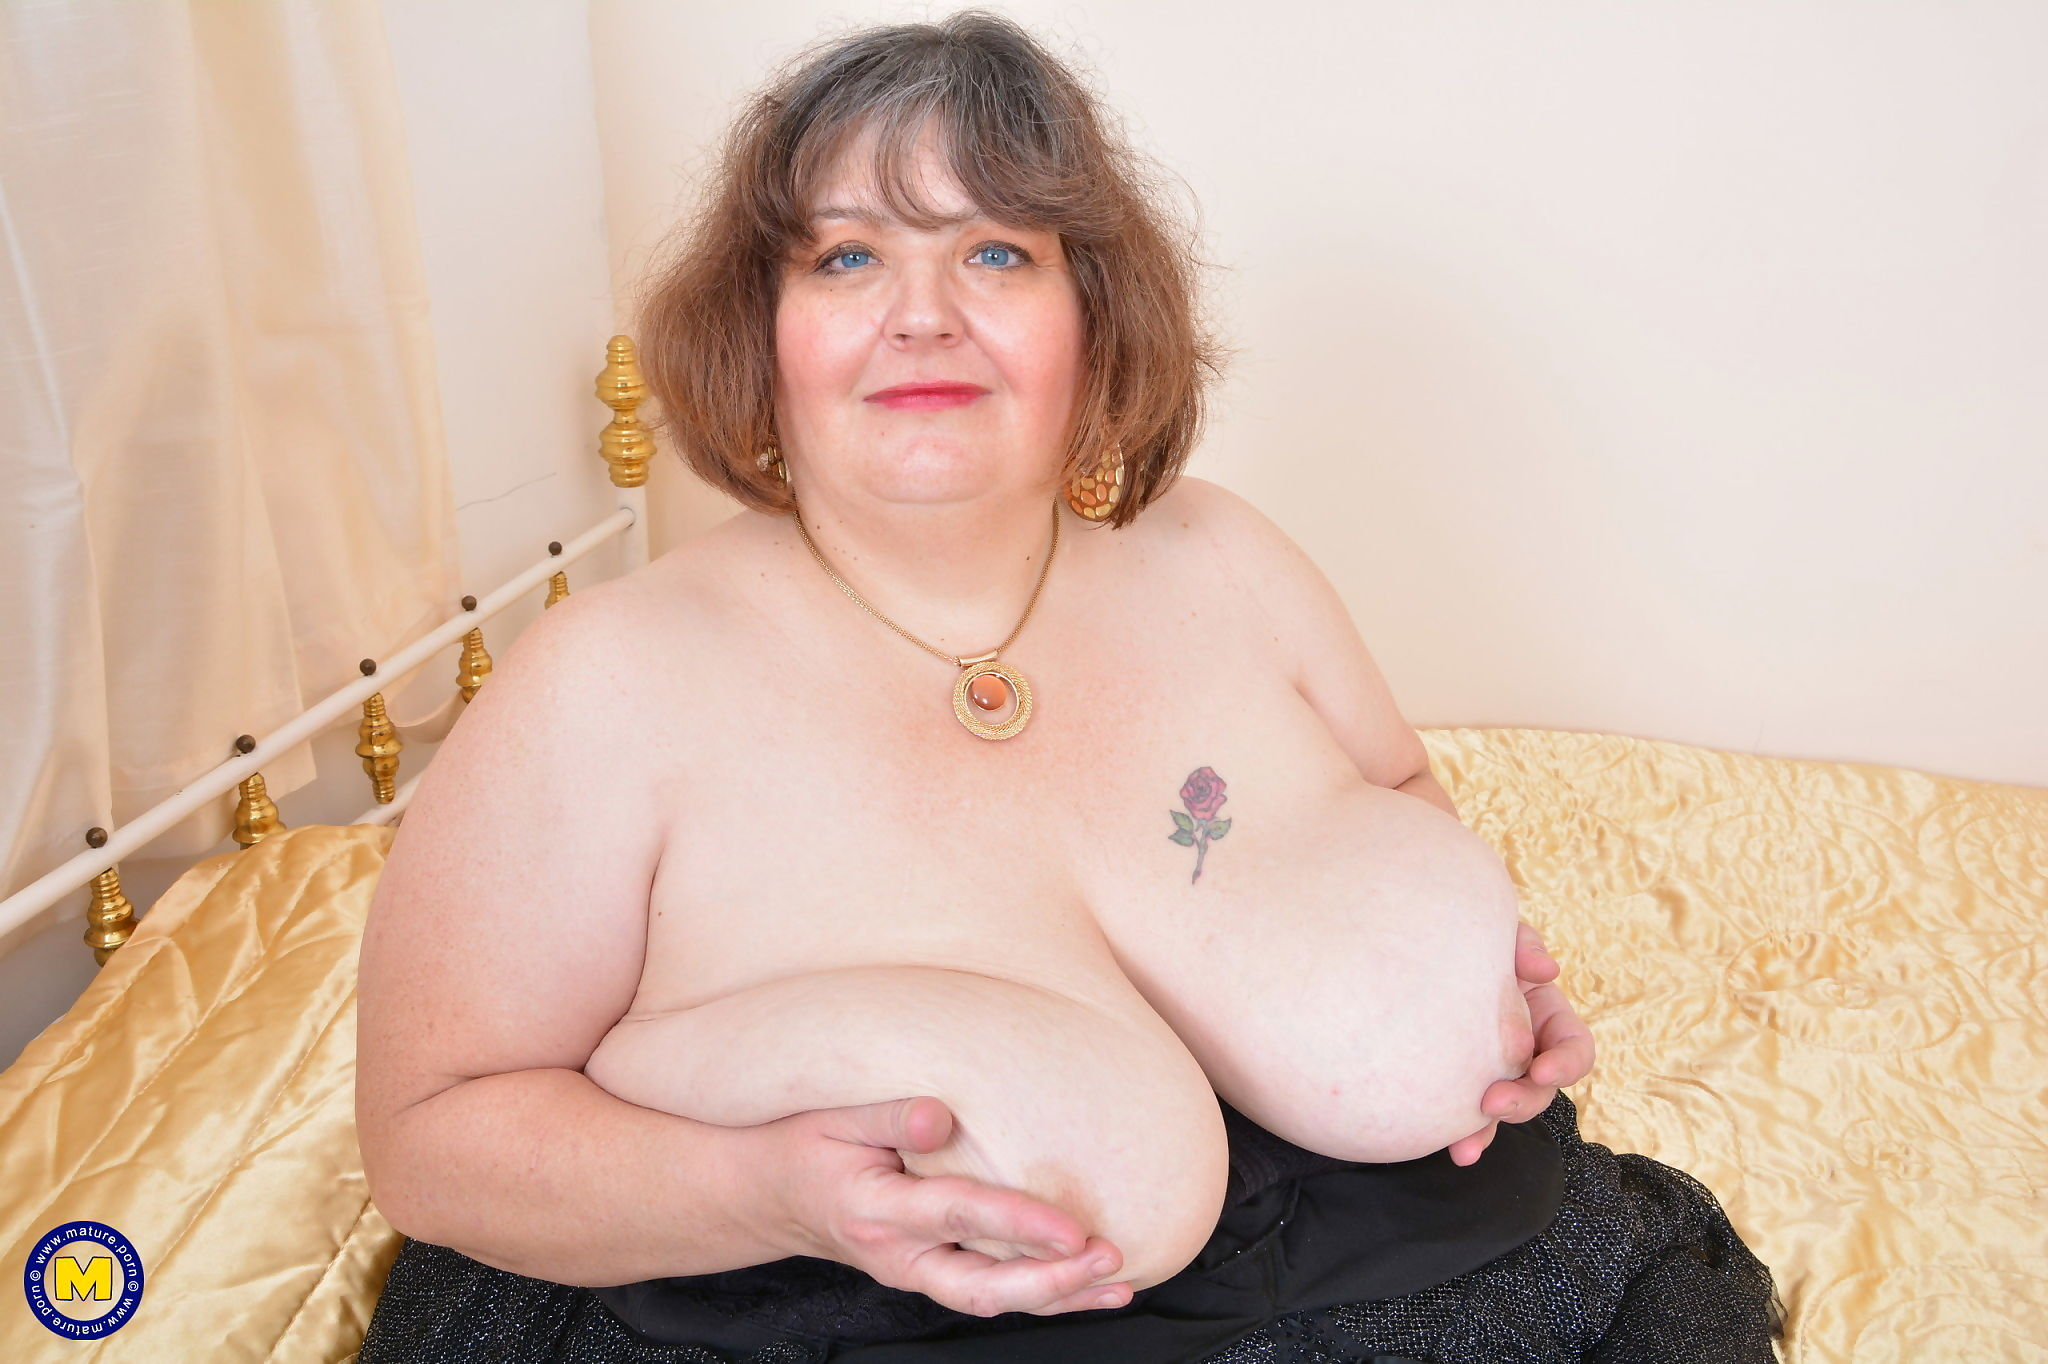 Huge breasted mature bbw playing with herself - part 1770